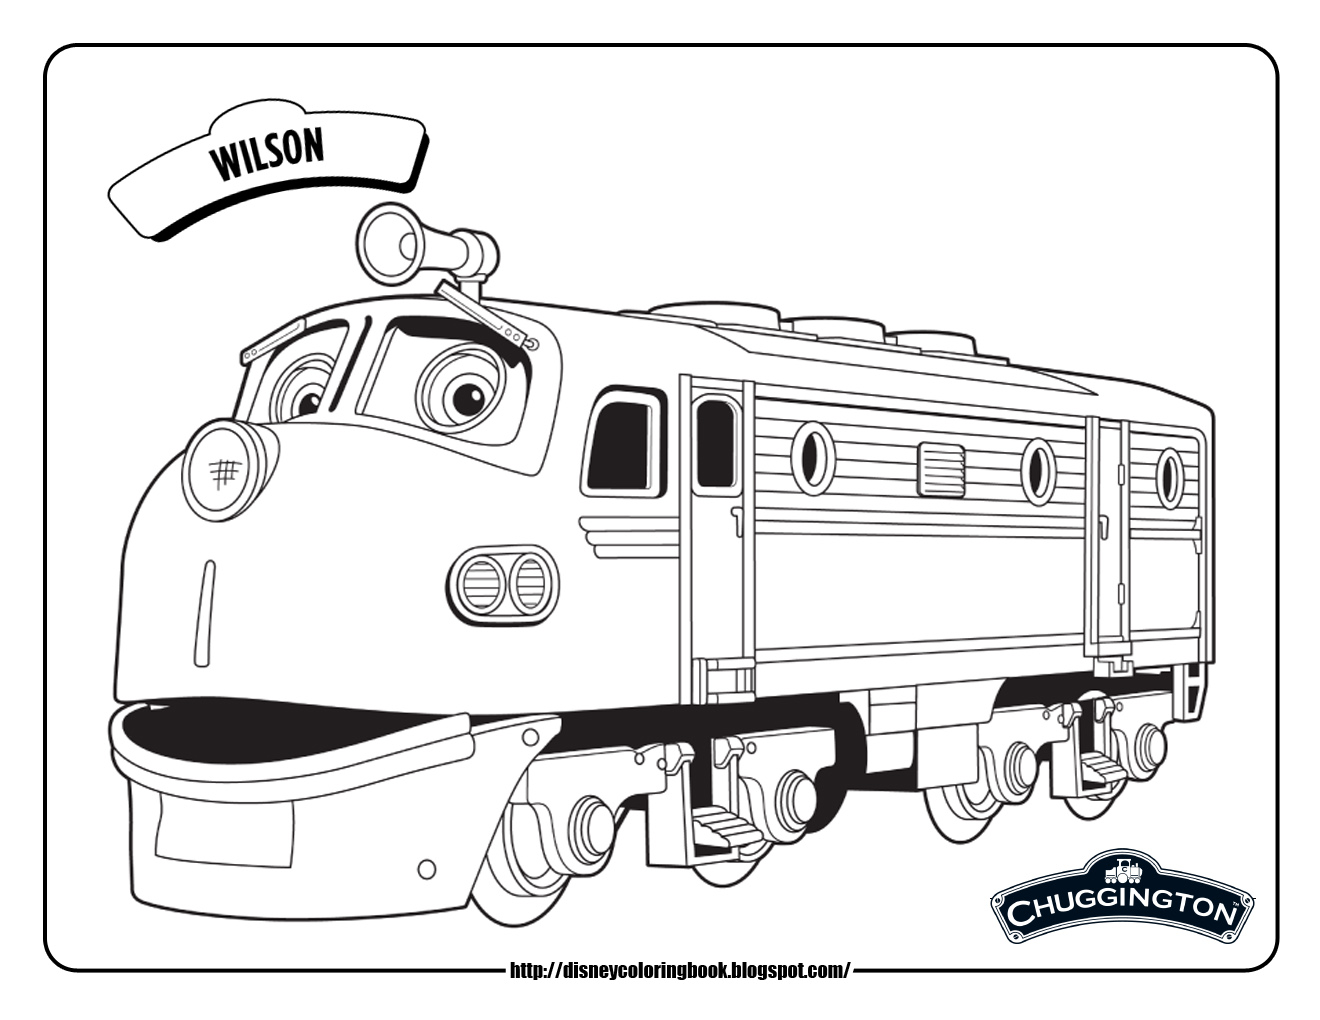 Chuggington 1 Free Disney Coloring Sheets Team Colors Chuggington Colouring Pages